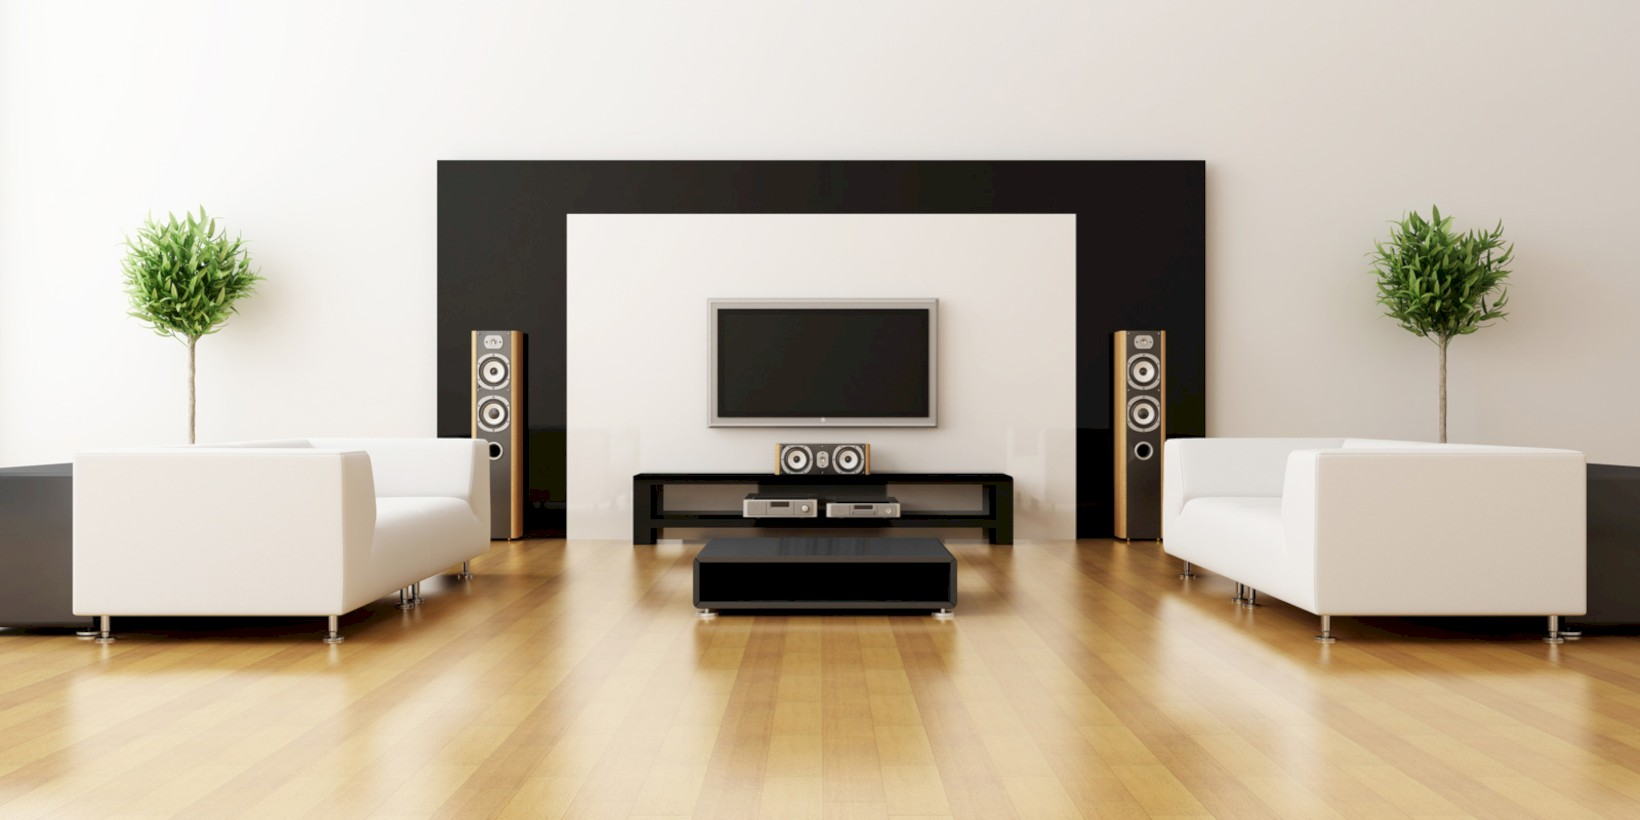 floor tile designs for small living rooms black and red room decorating ideas 50 classy tiles design round decor 49